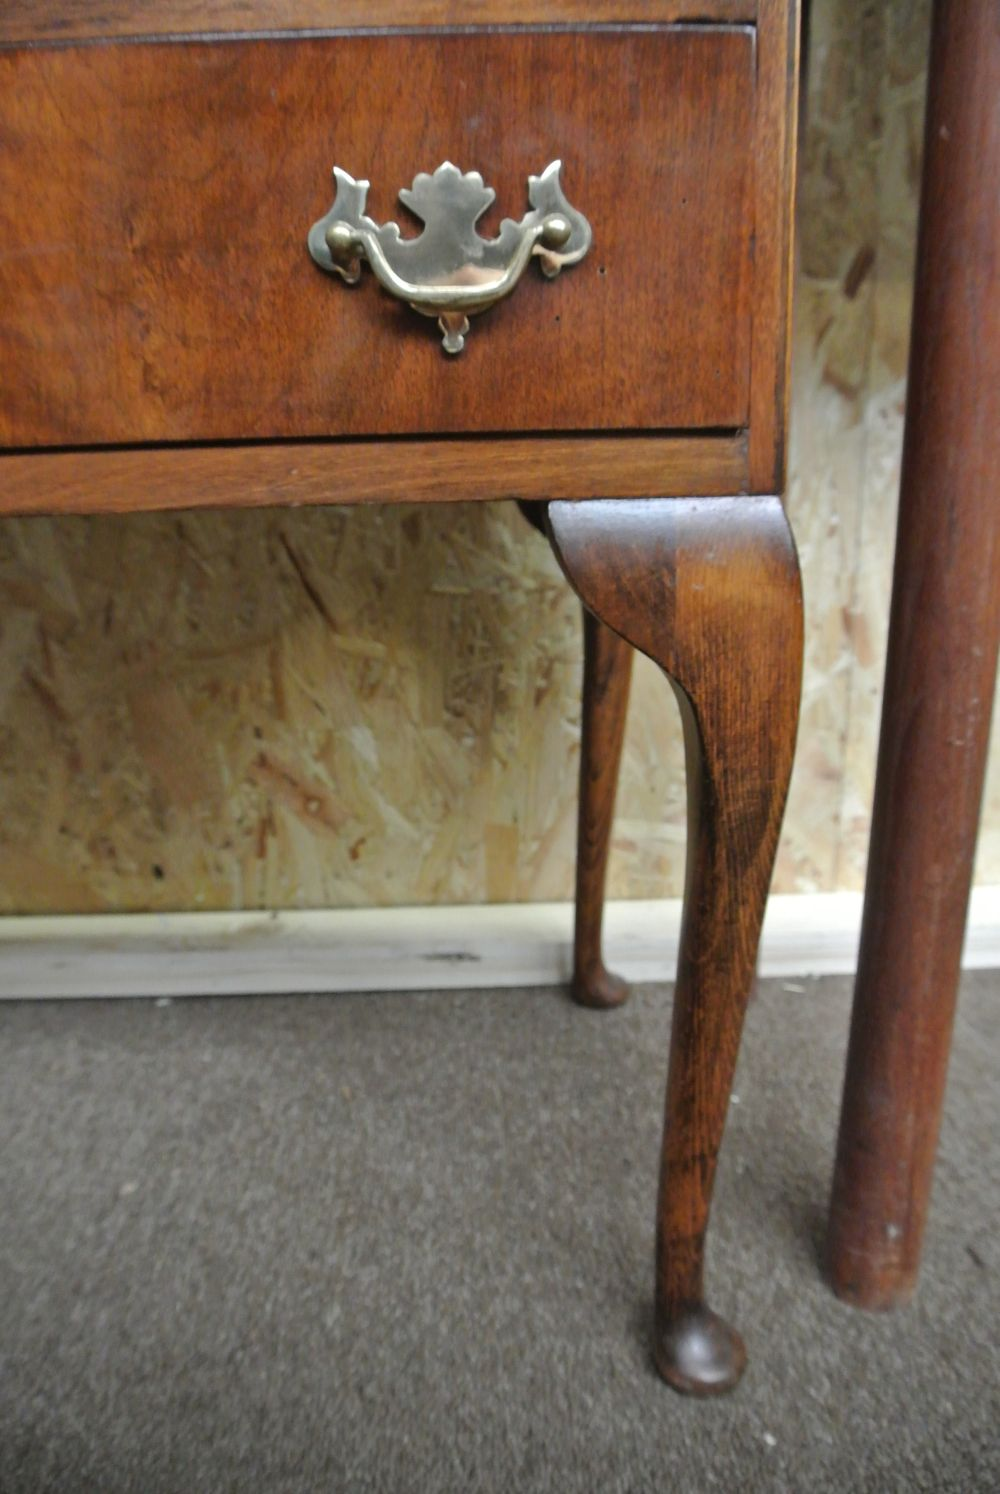 Lot 12: An antique writing bureau on cabriole legs with brass hardware.